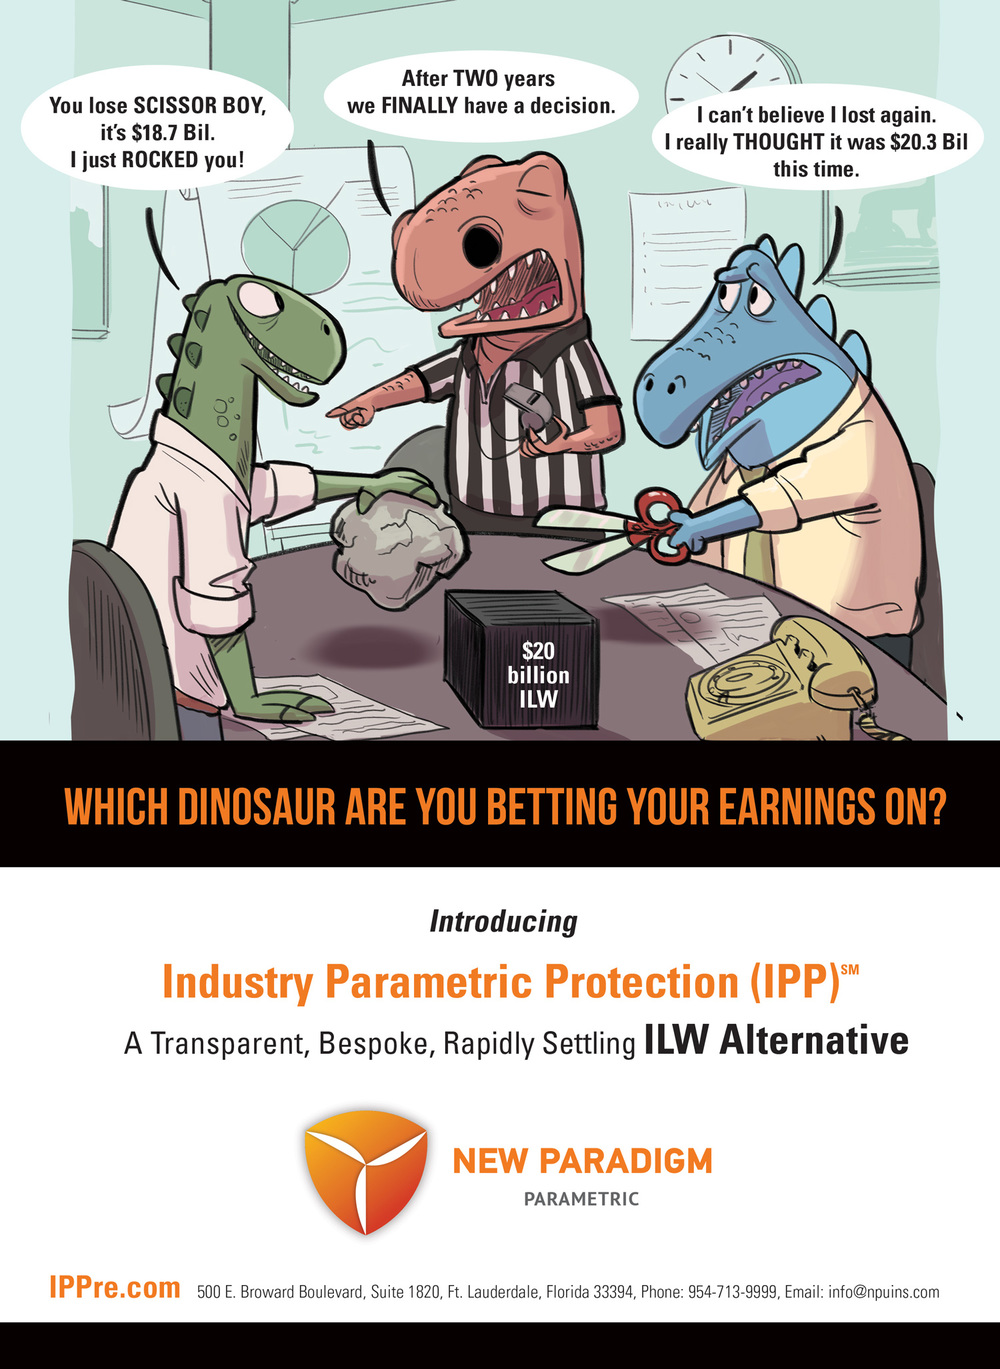 Understanding New Paradigm Parametric Underwriters